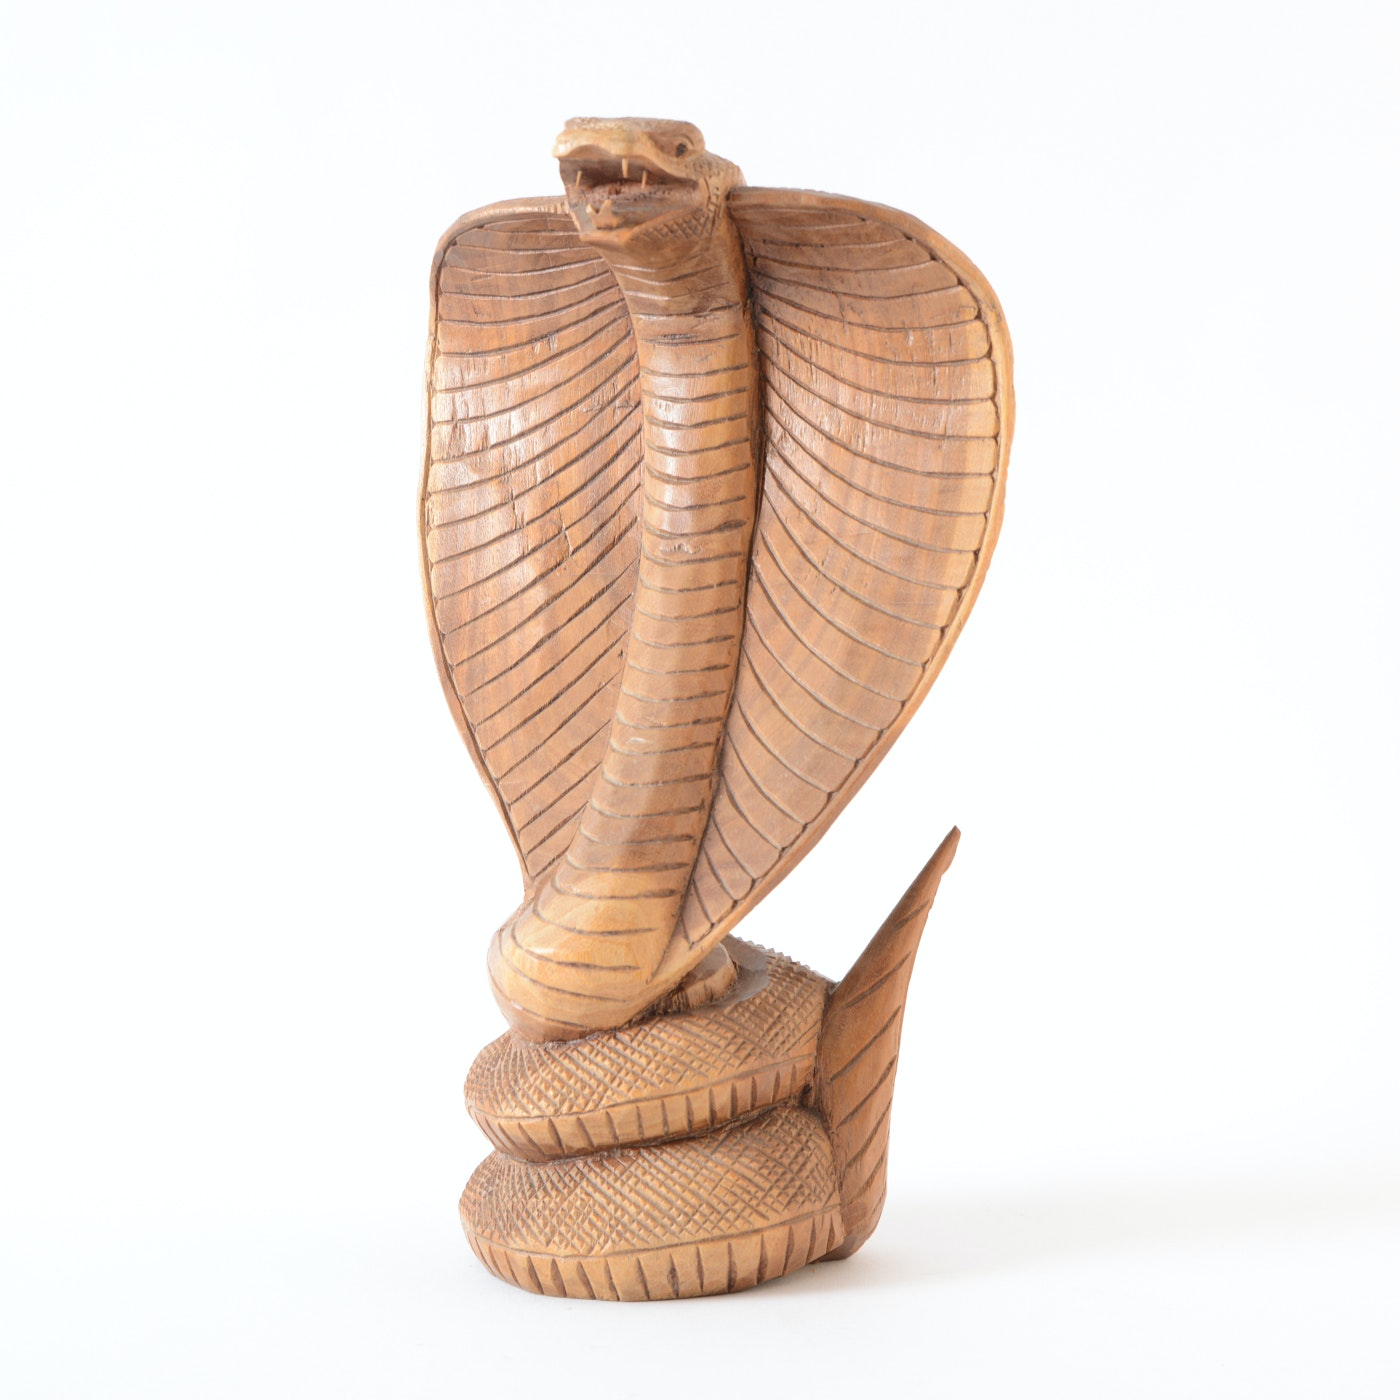 Carved Wood Sculpture of a Hooded Cobra